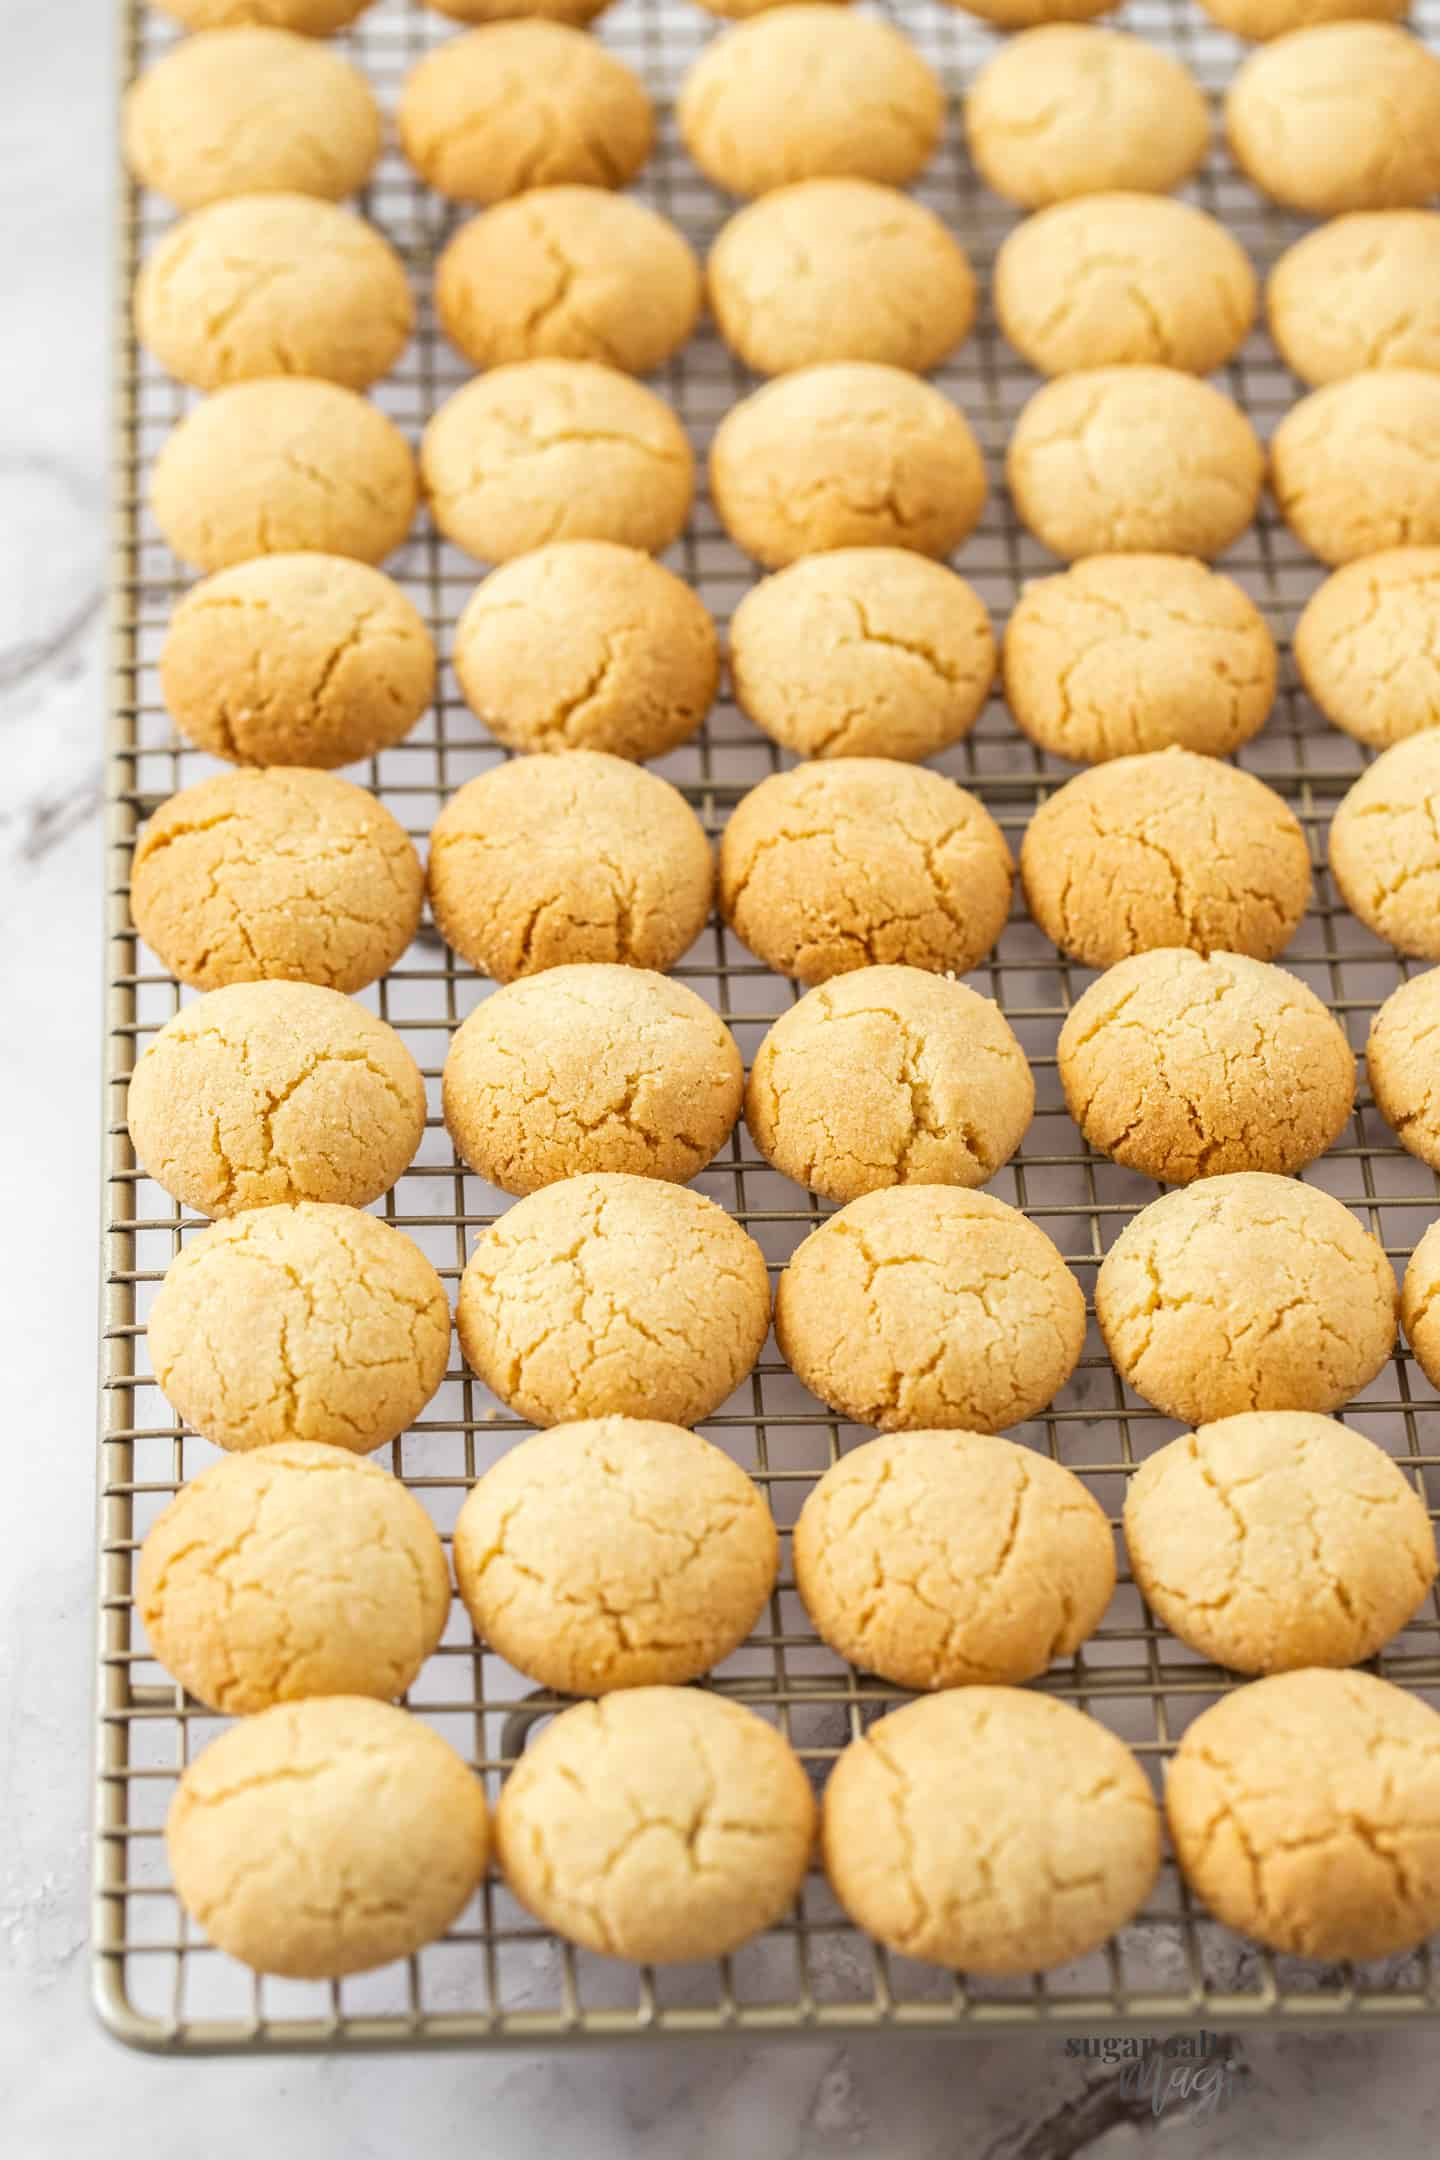 Small rounded cookies lined up on a cooling rack.